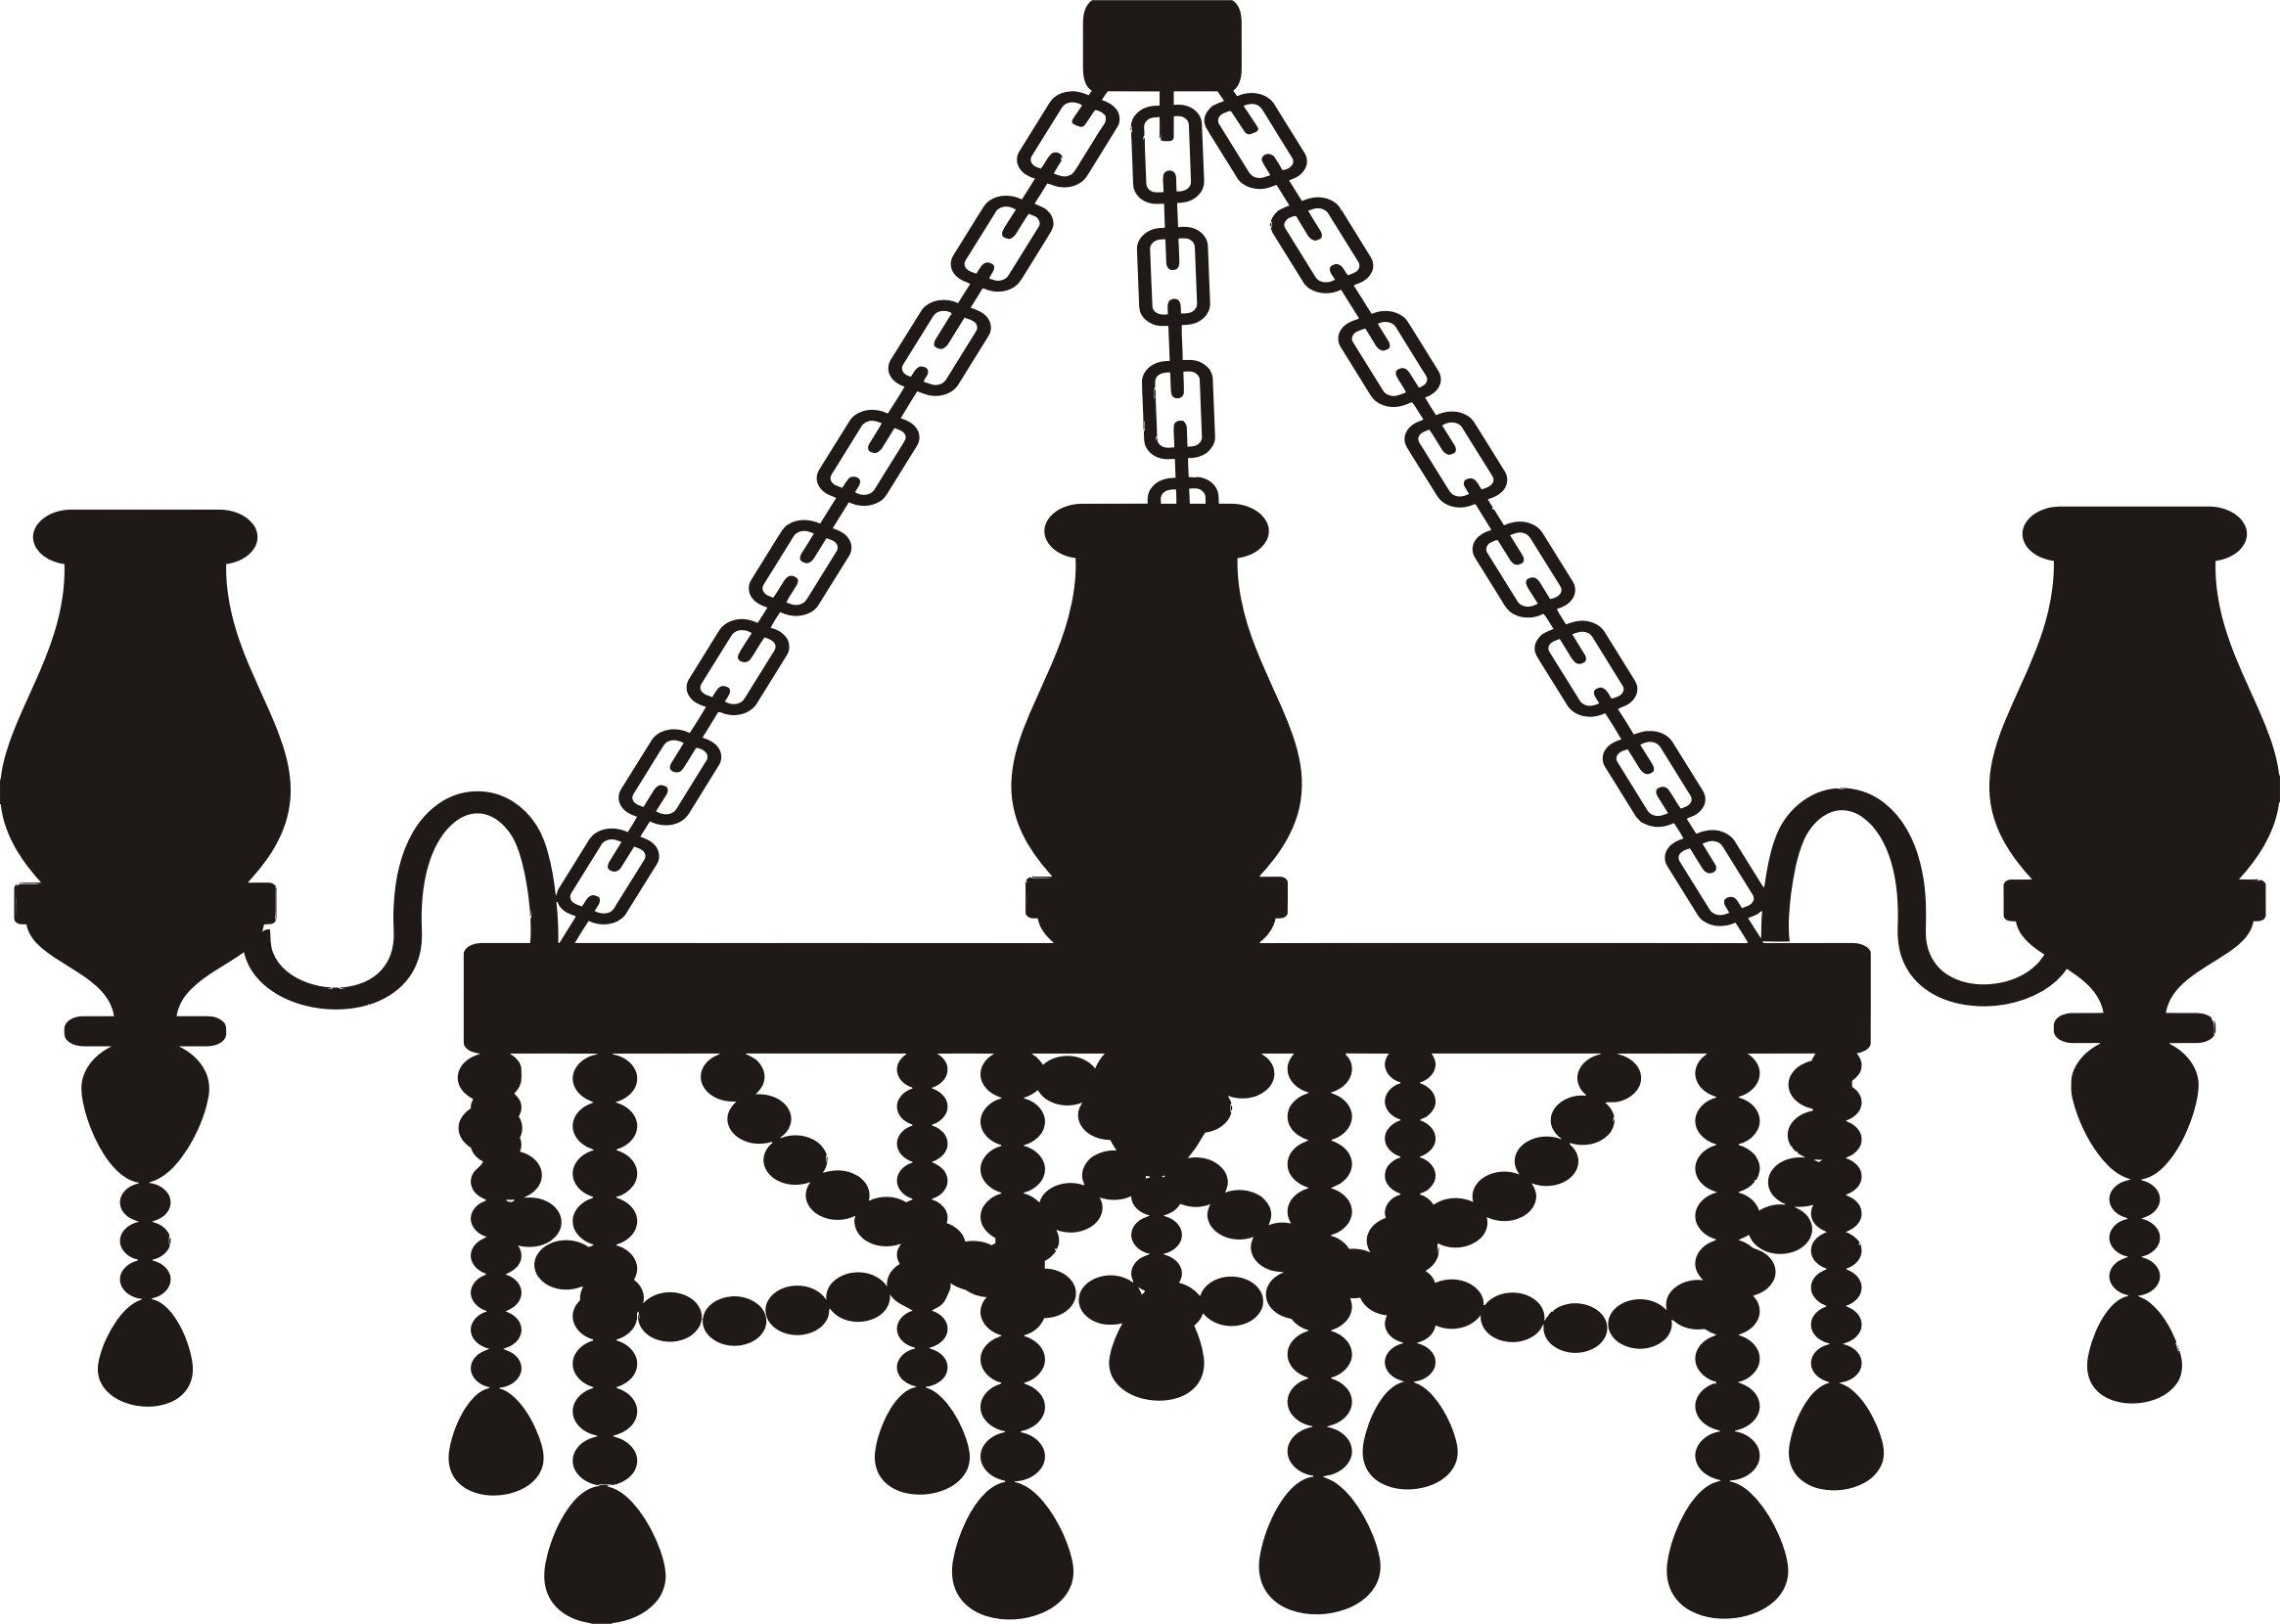 clipart royalty free Silhouette big image png. Chandelier clipart